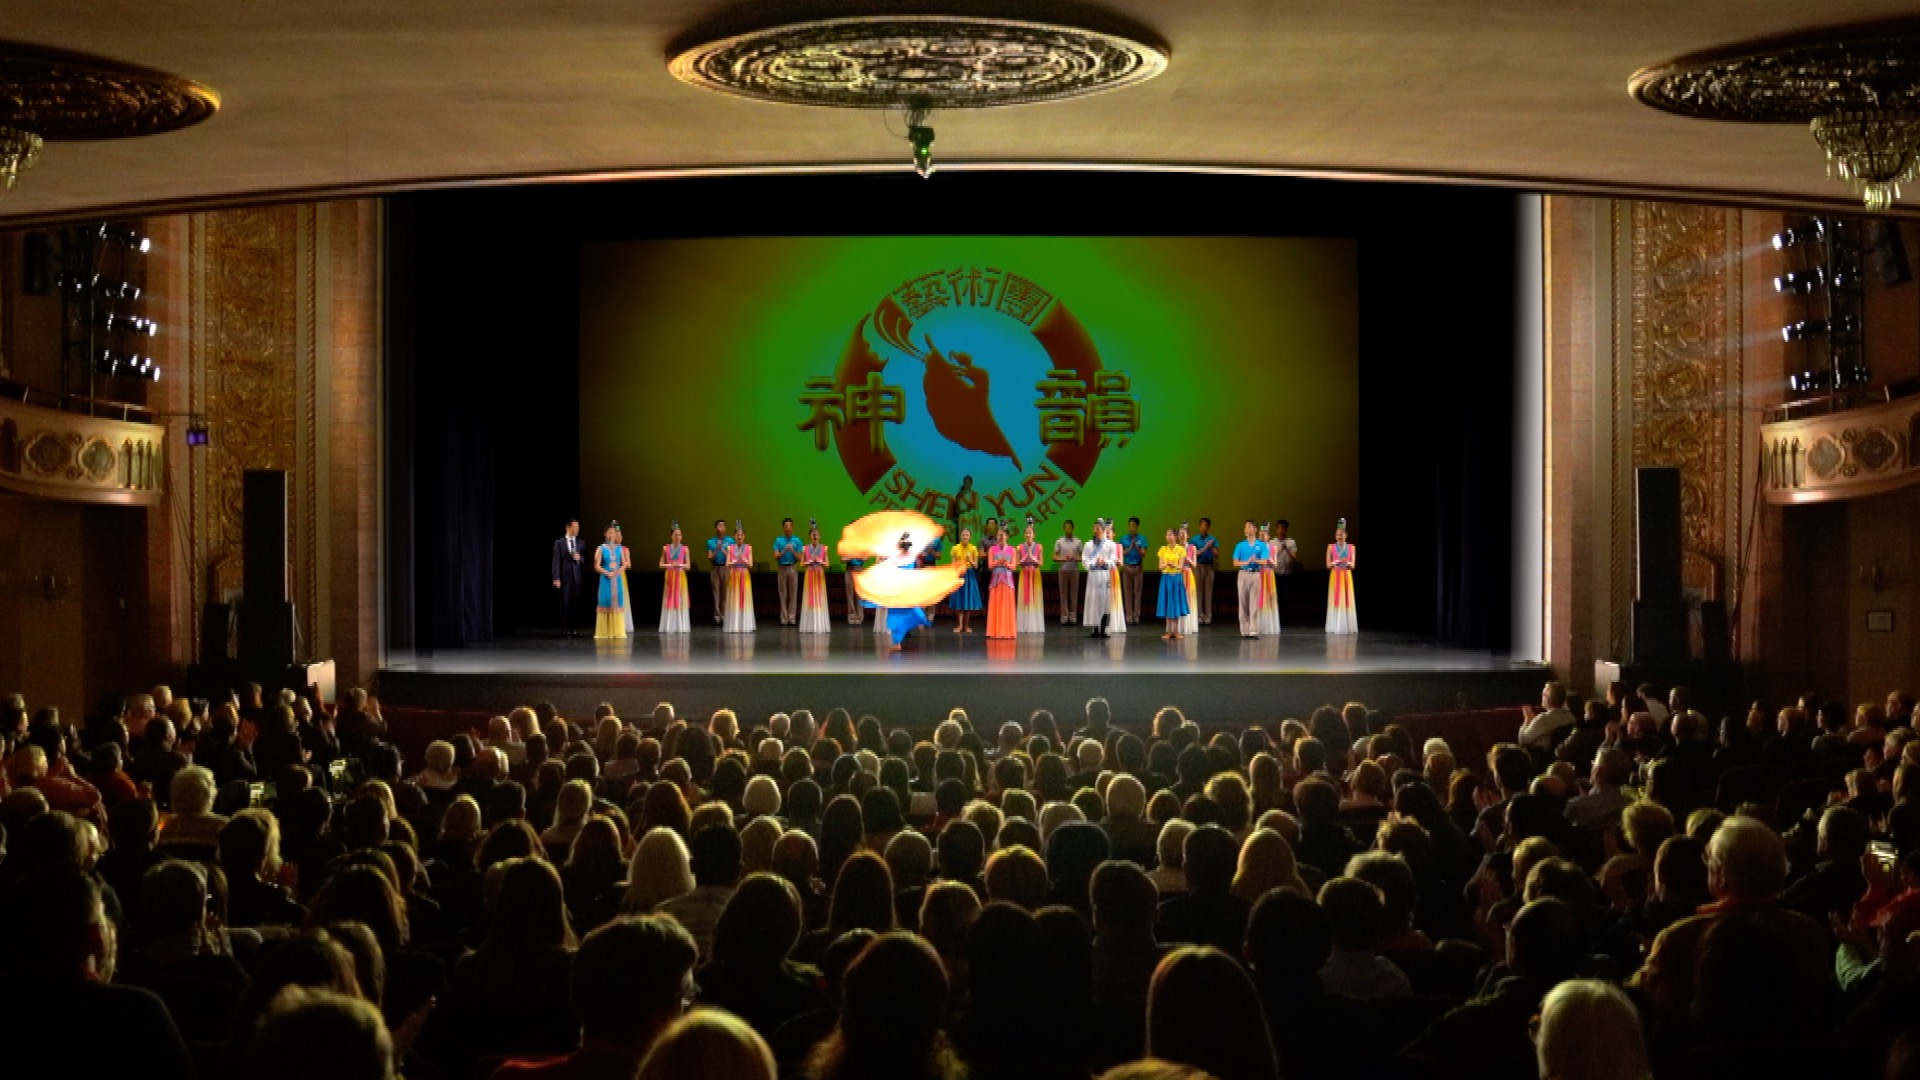 Shen Yun 'In Perfect Harmony,' Says Partner at Consulting Firm